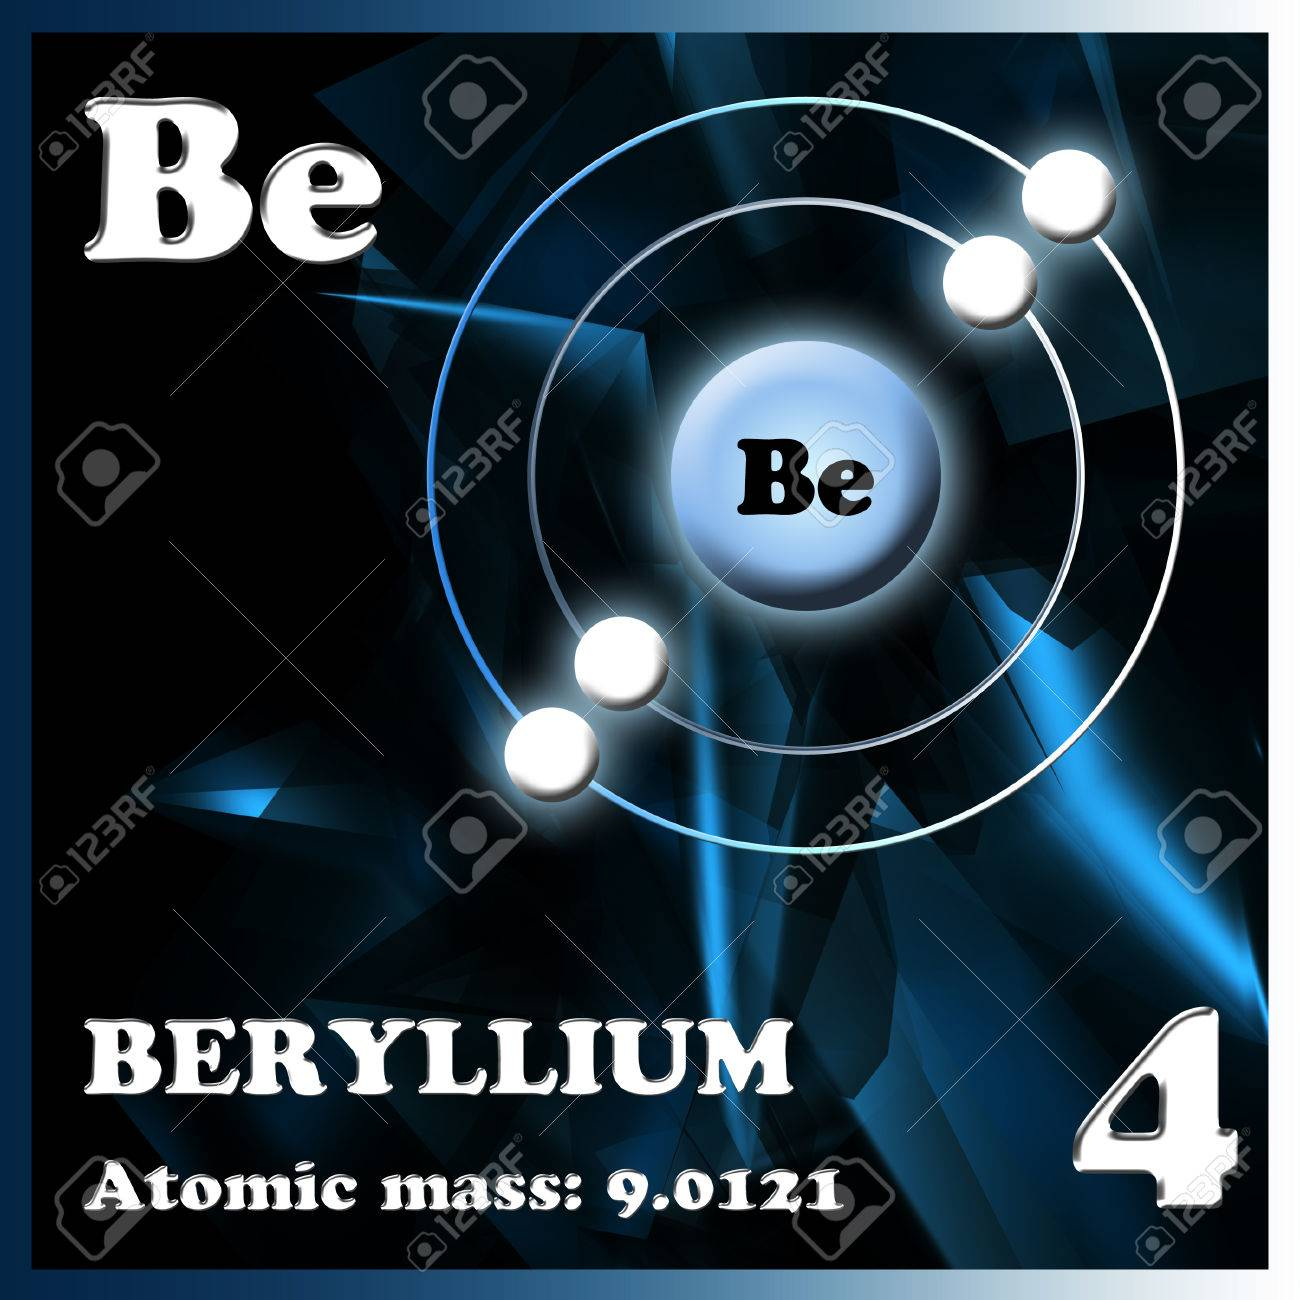 The element beryllium in the periodic table of mendeleev stock photo stock photo the element beryllium in the periodic table of mendeleev urtaz Image collections